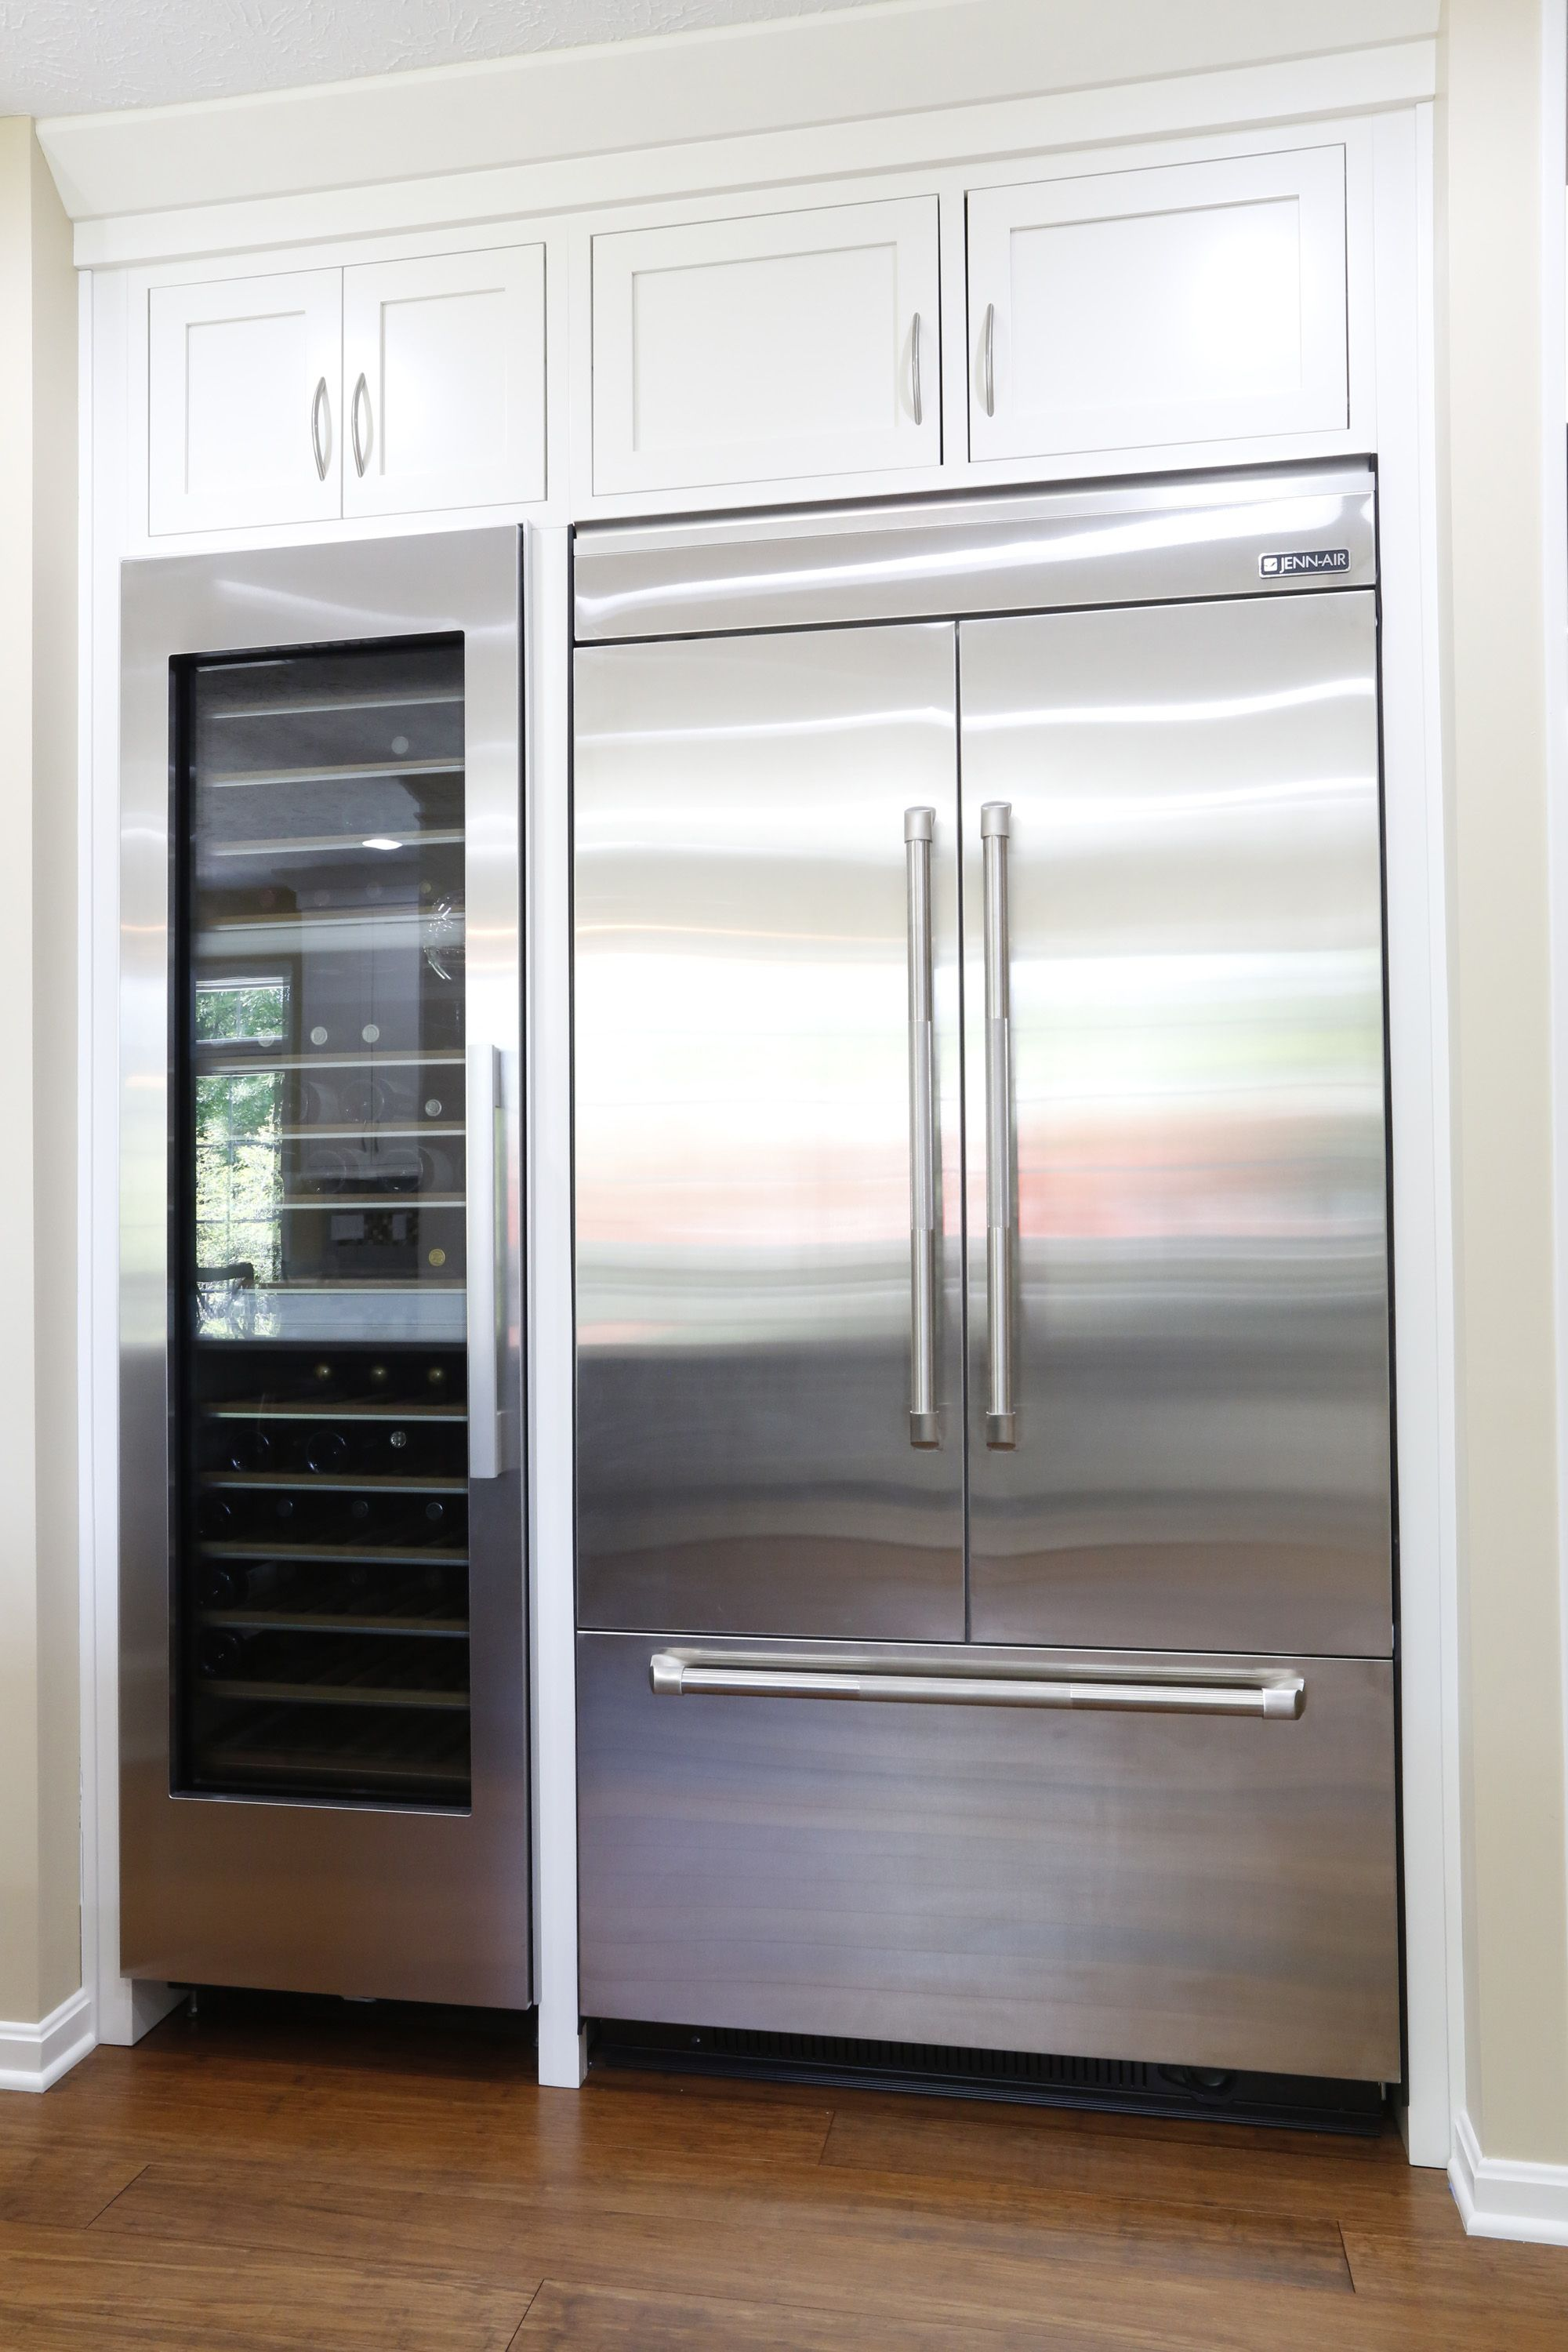 "Jenn Air 42"" Integrated Built-In French Door Refrigerator next to a ..."